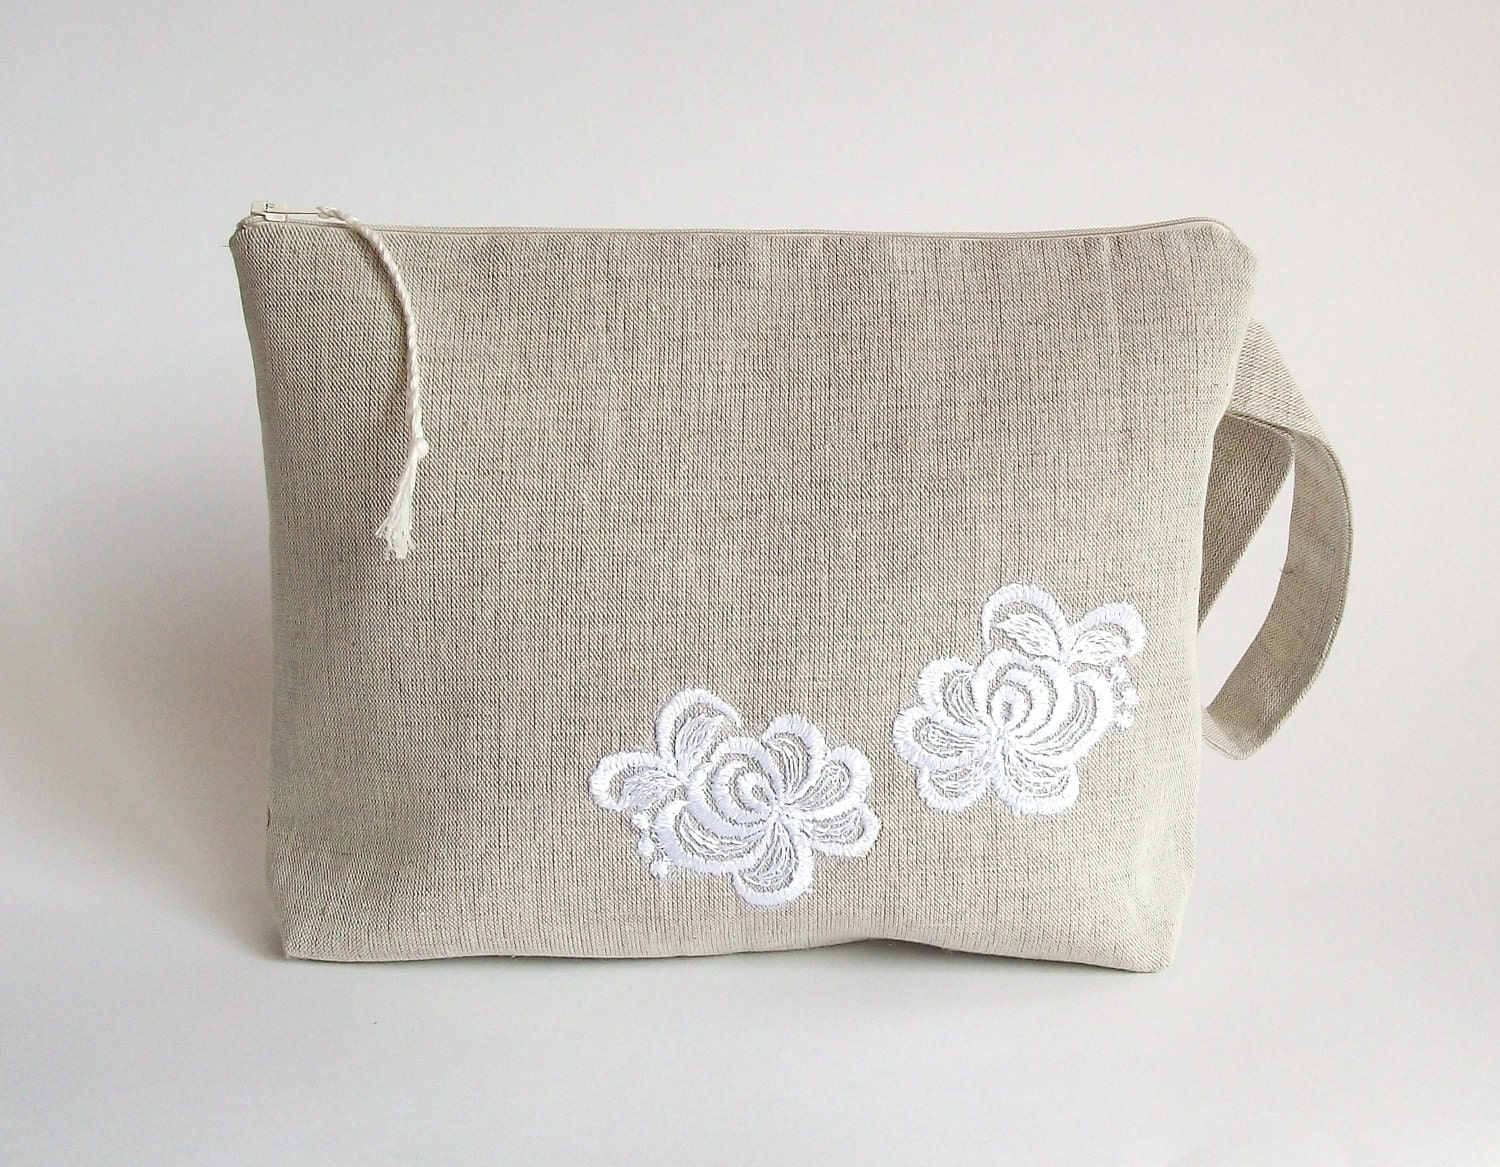 Crochet Knitting Bag : Knitting bag crochet bag yarn holder linen project by ProjectBag